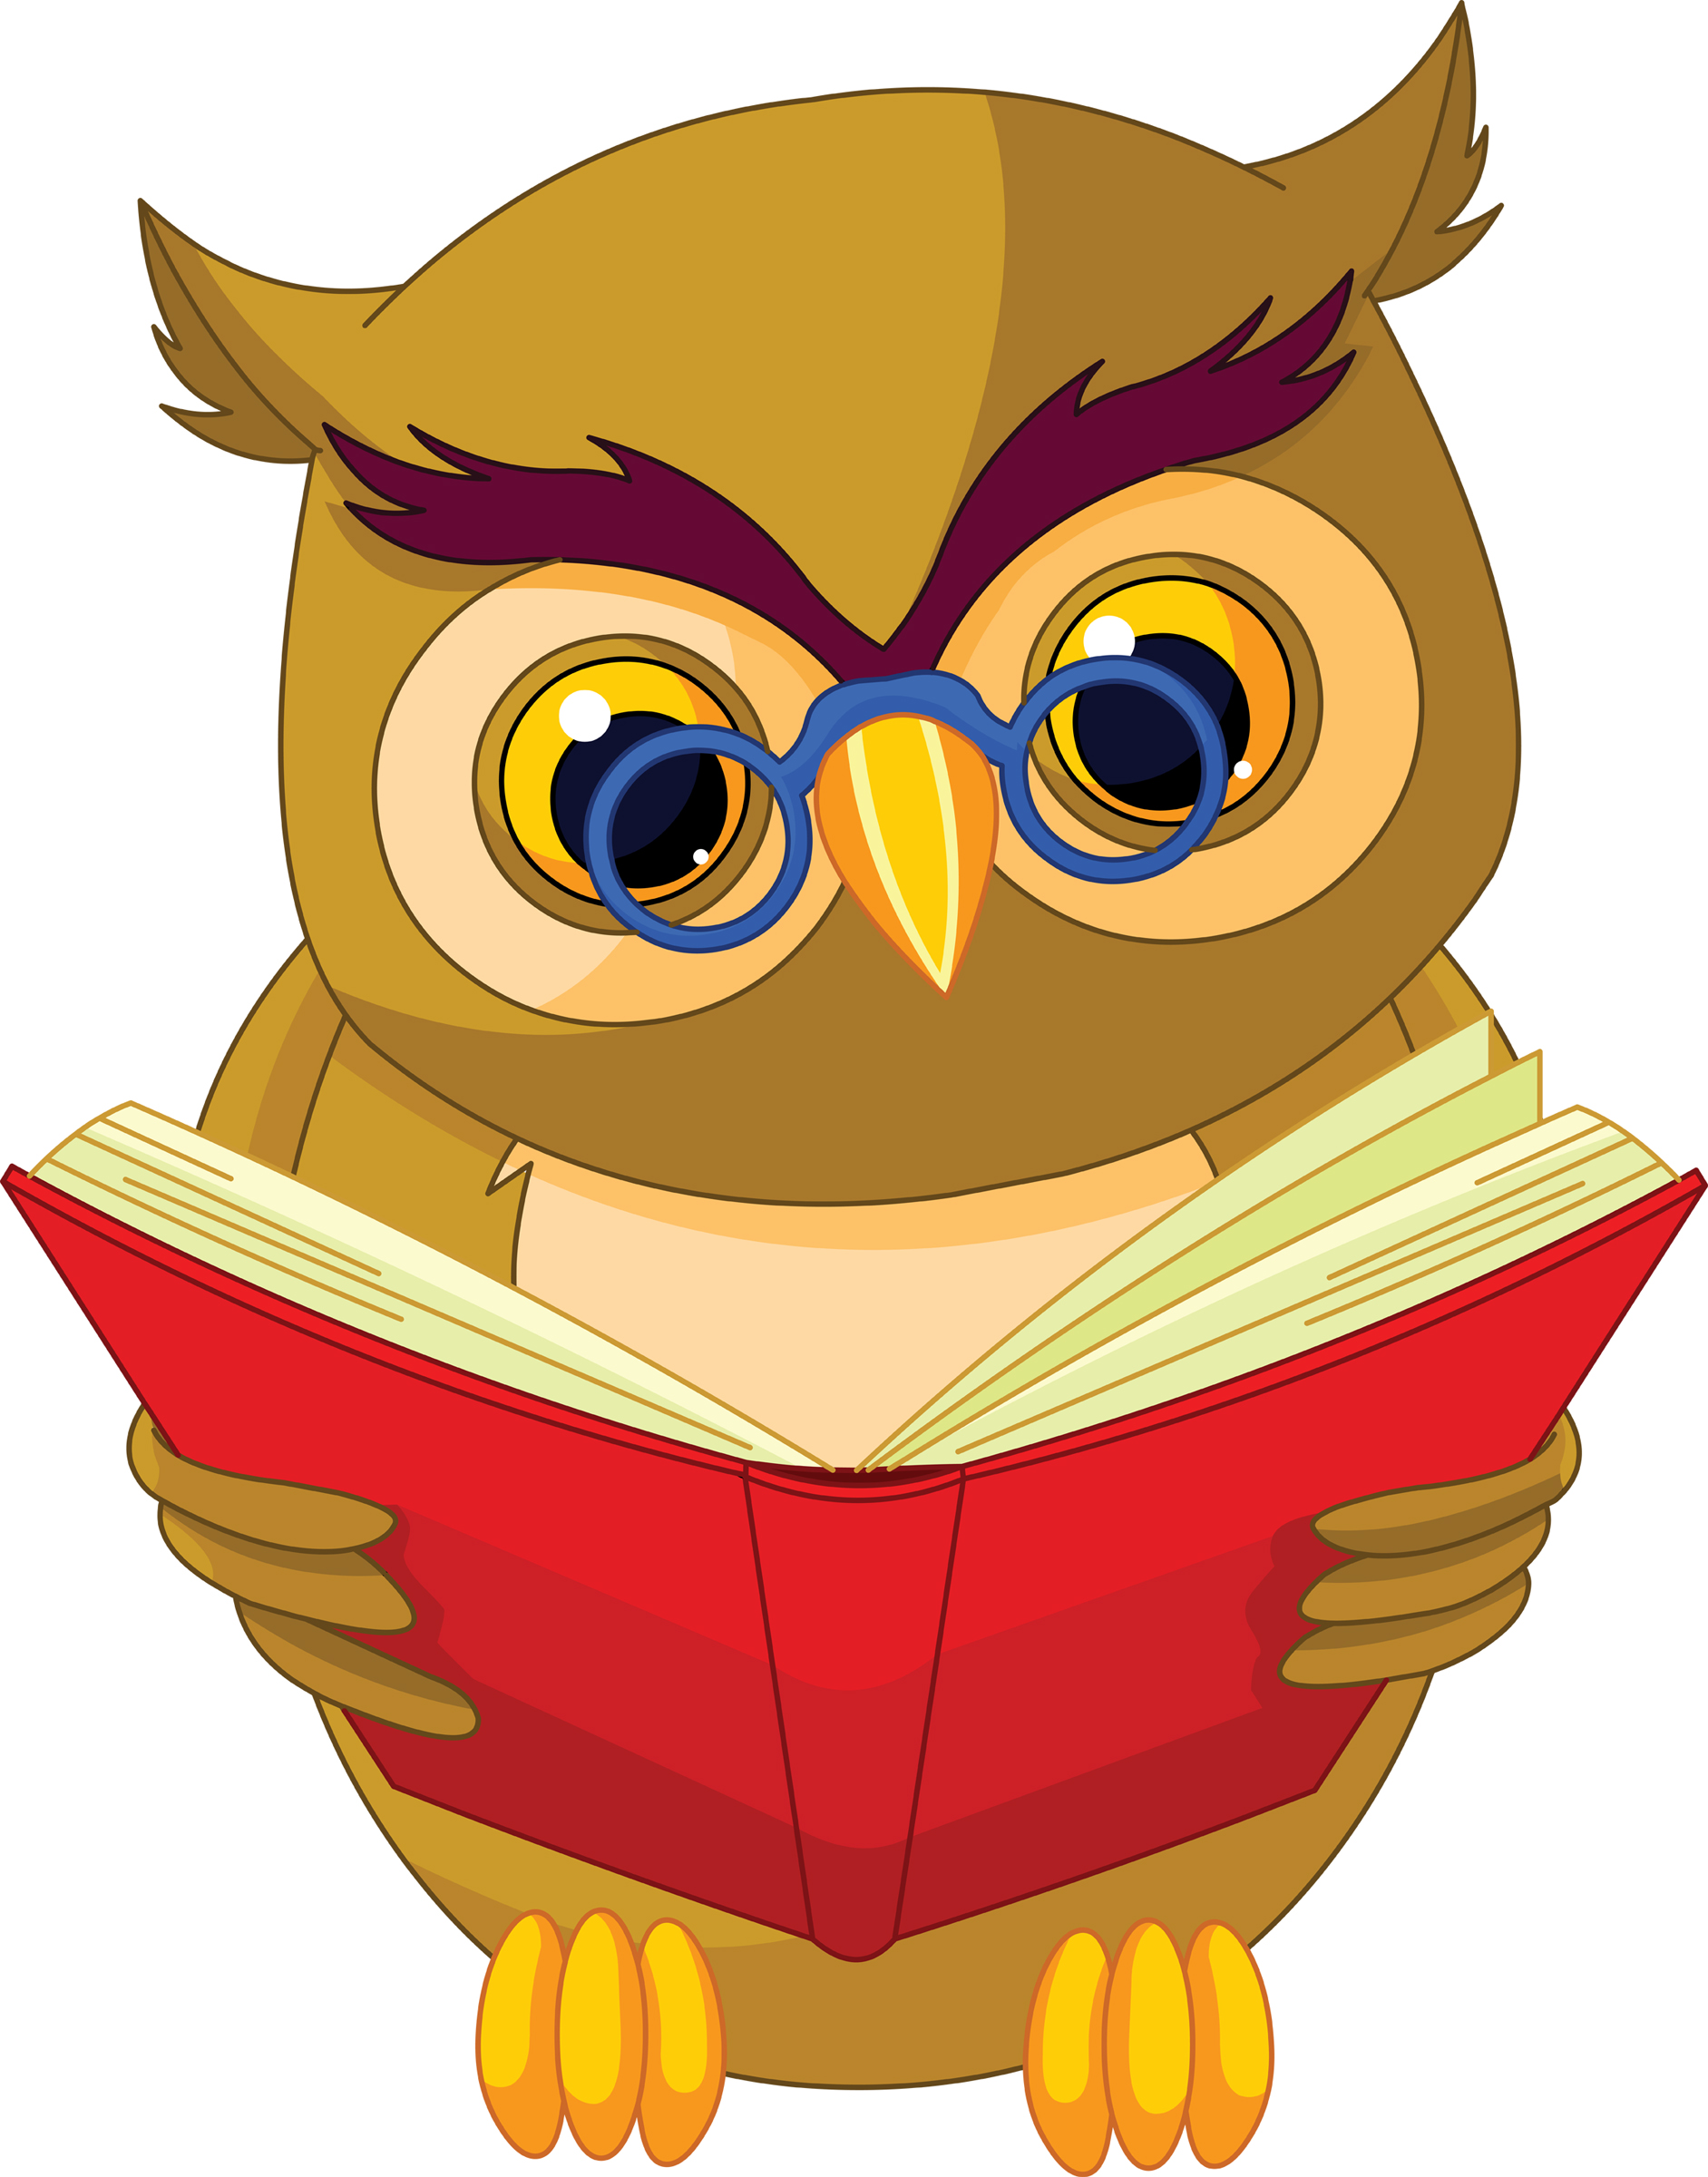 Pin book owl on pinterest for A cartoon owl